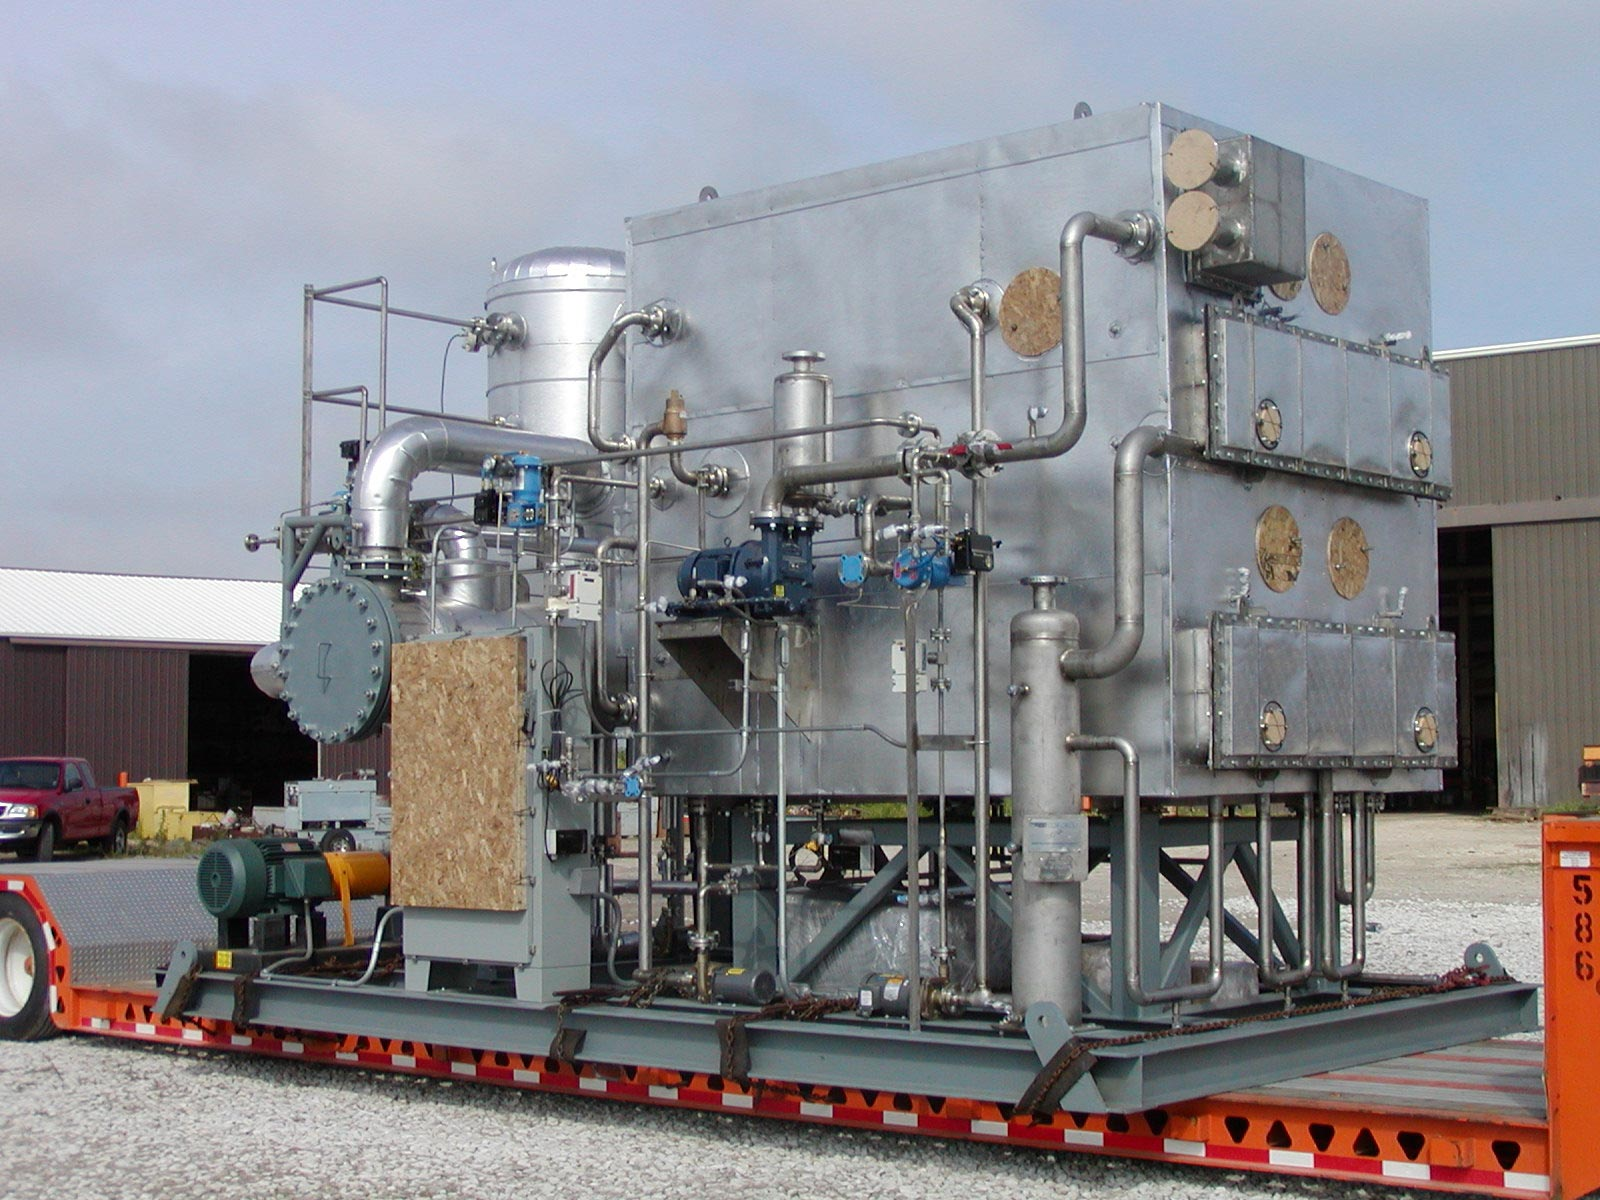 Complete Skid-Mounted 5-Effect Evaporation System (piped, instrumented, wired, insulated and lagged)